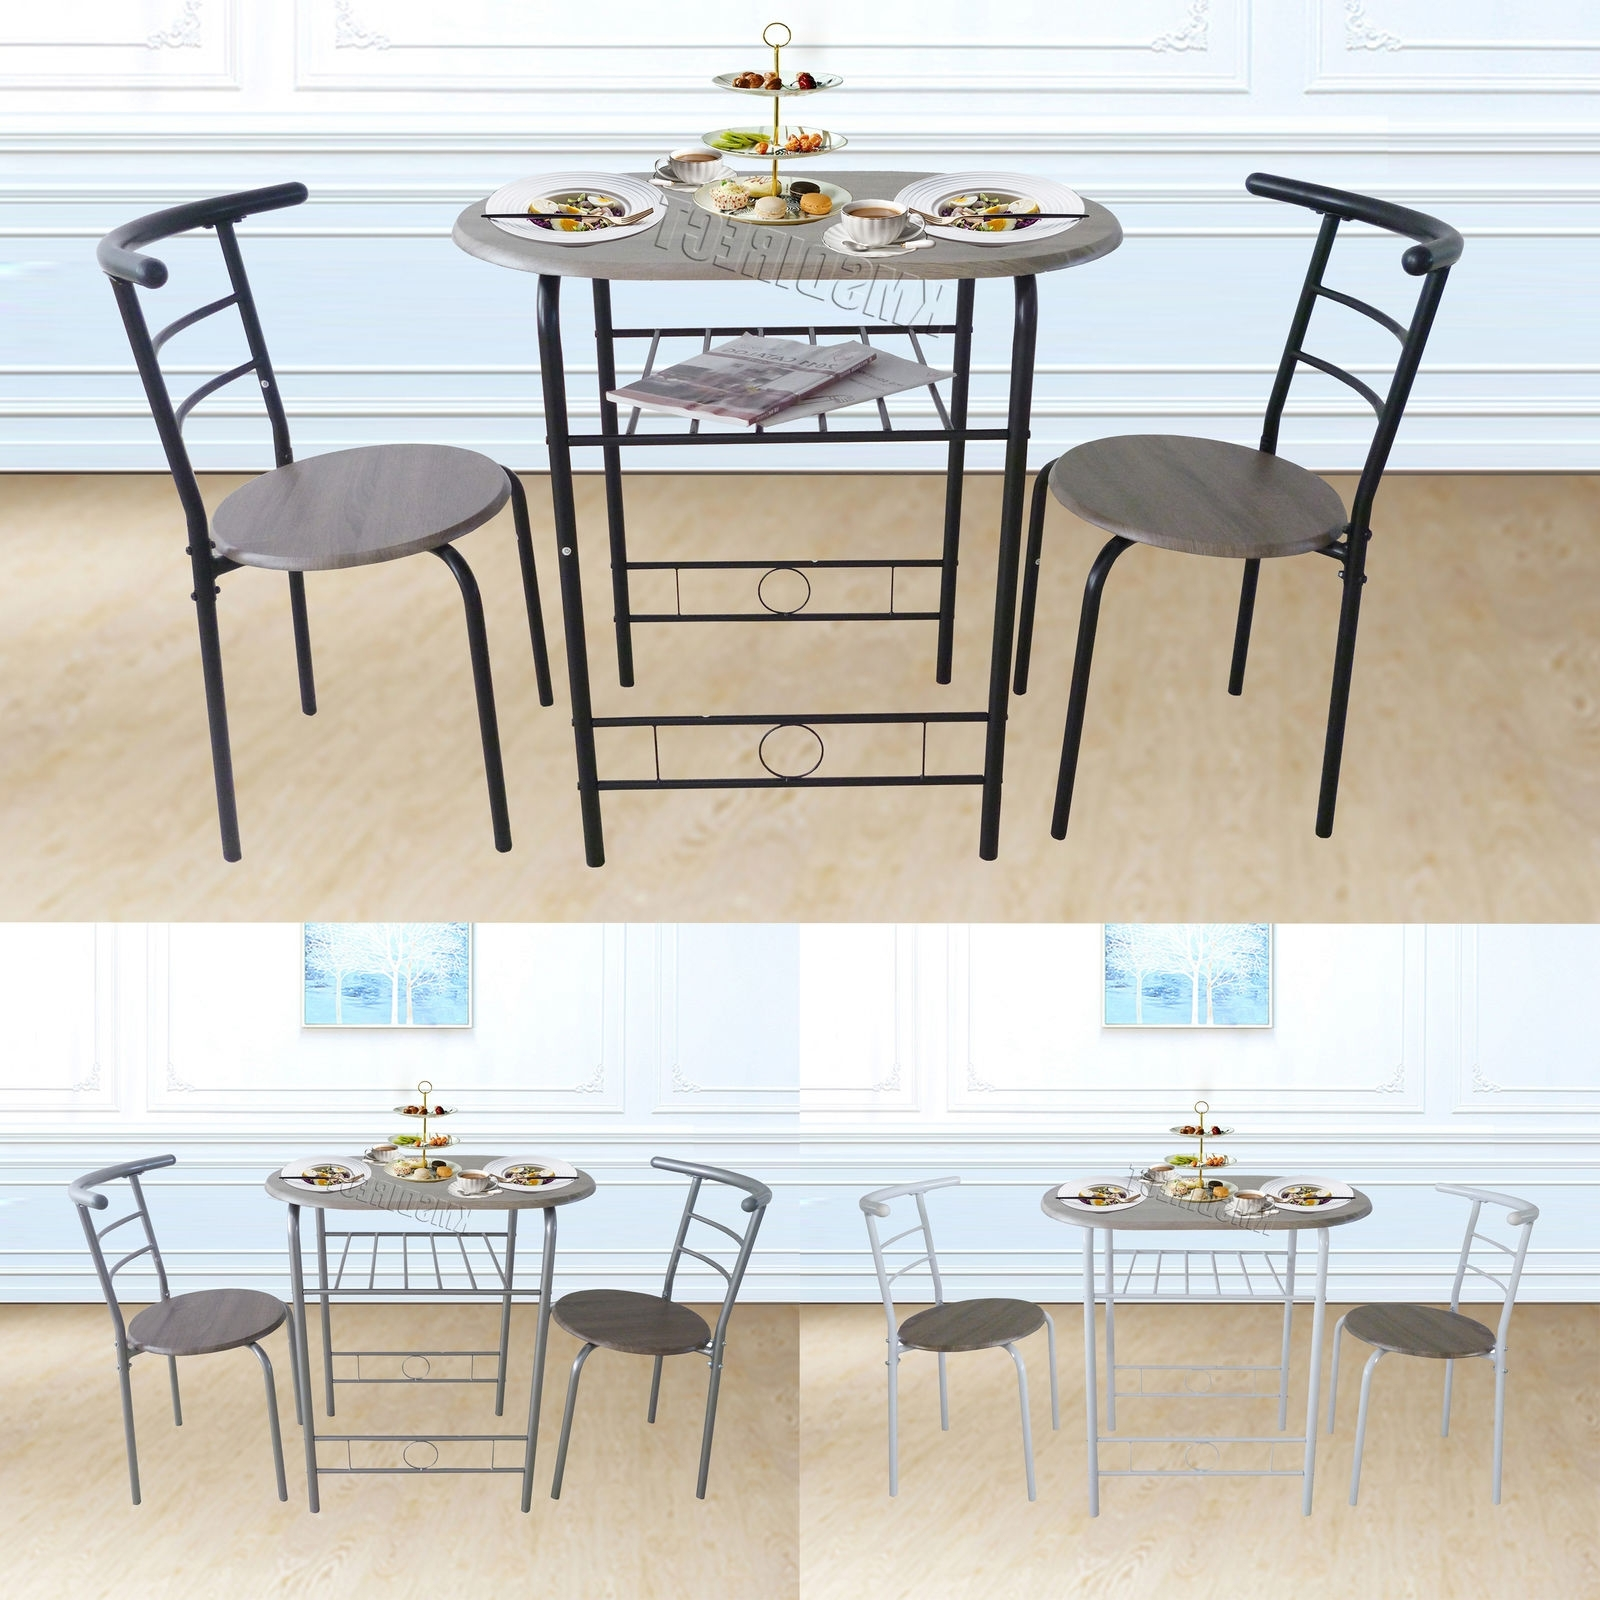 Favorite Westwood Compact Dining Table Breakfast Bar 2 Chair Set Metal Mdf For Compact Dining Sets (View 14 of 25)